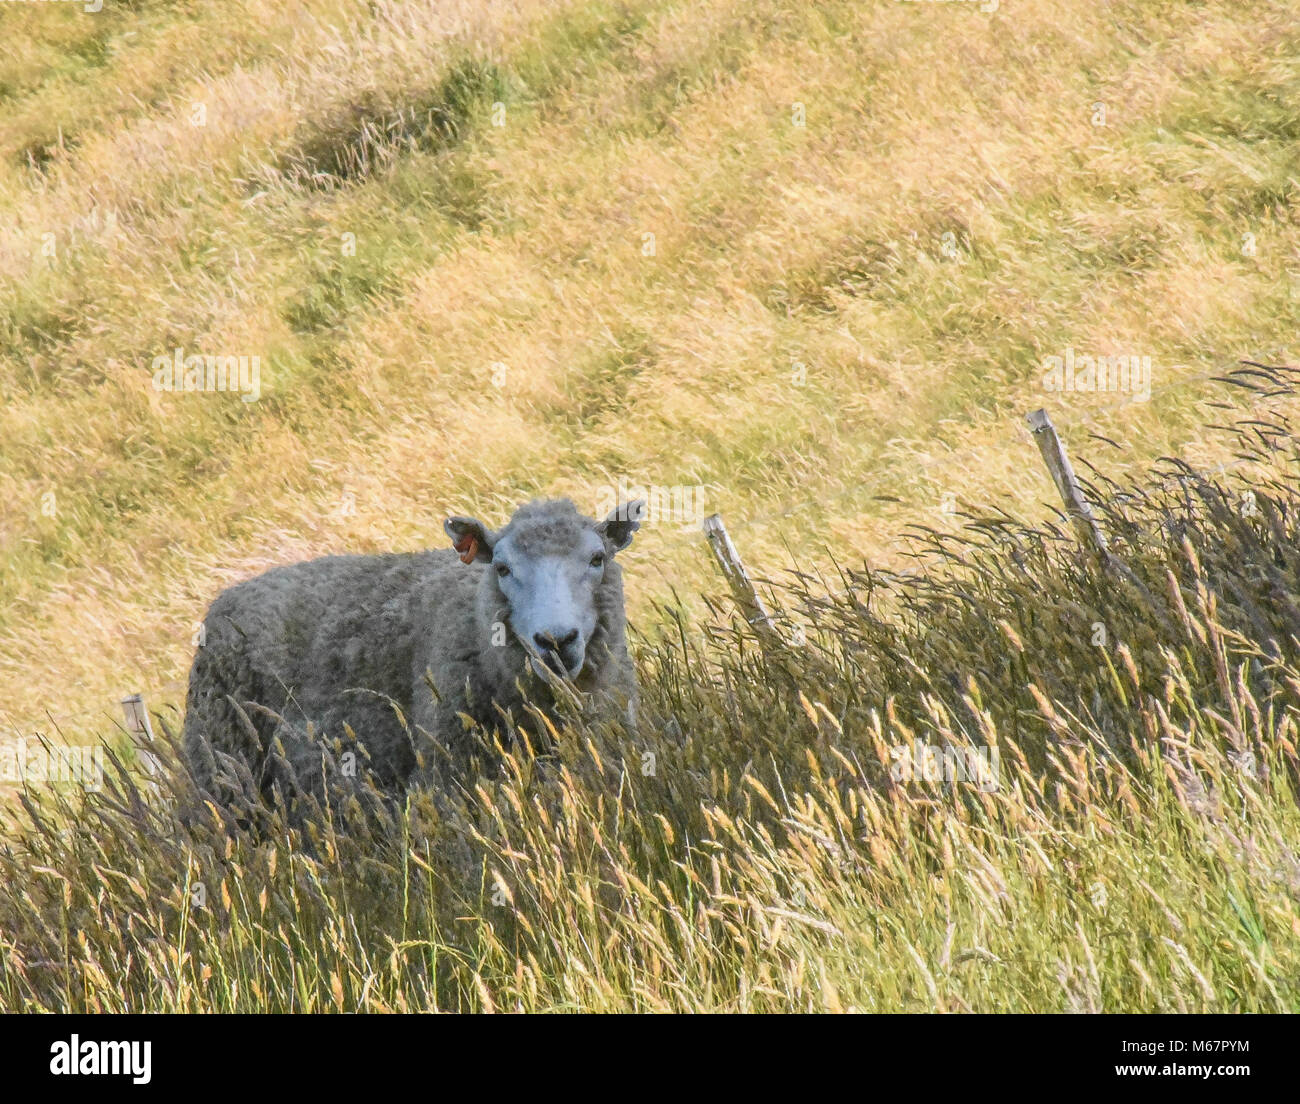 lone sheep grazing in the field - Stock Image